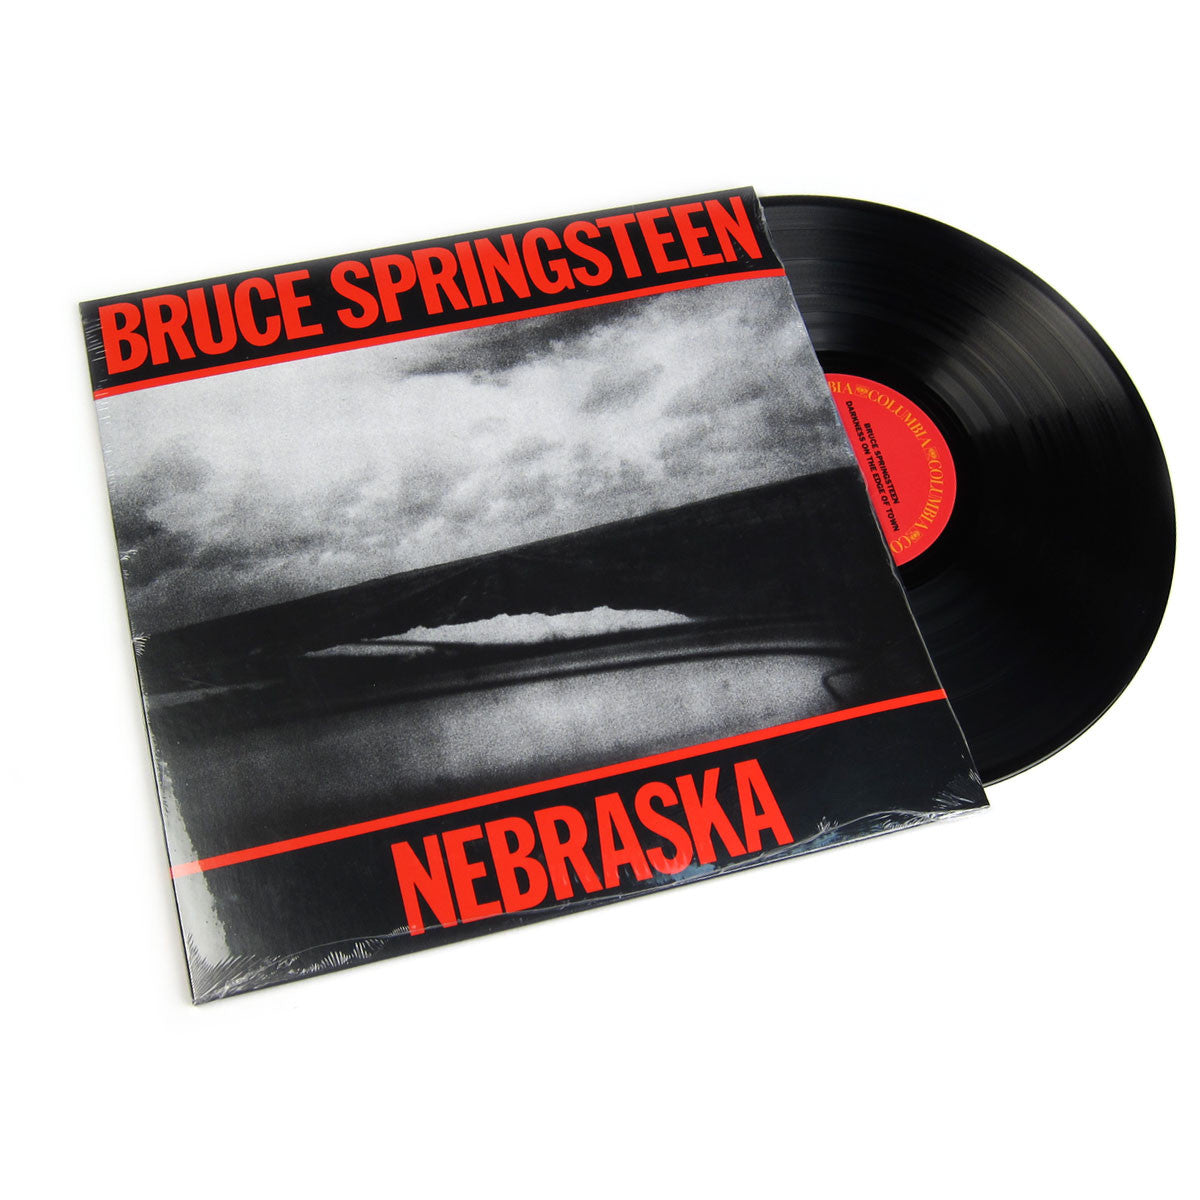 Bruce Springsteen: Nebraska (180g) Vinyl LP (Record Store Day)